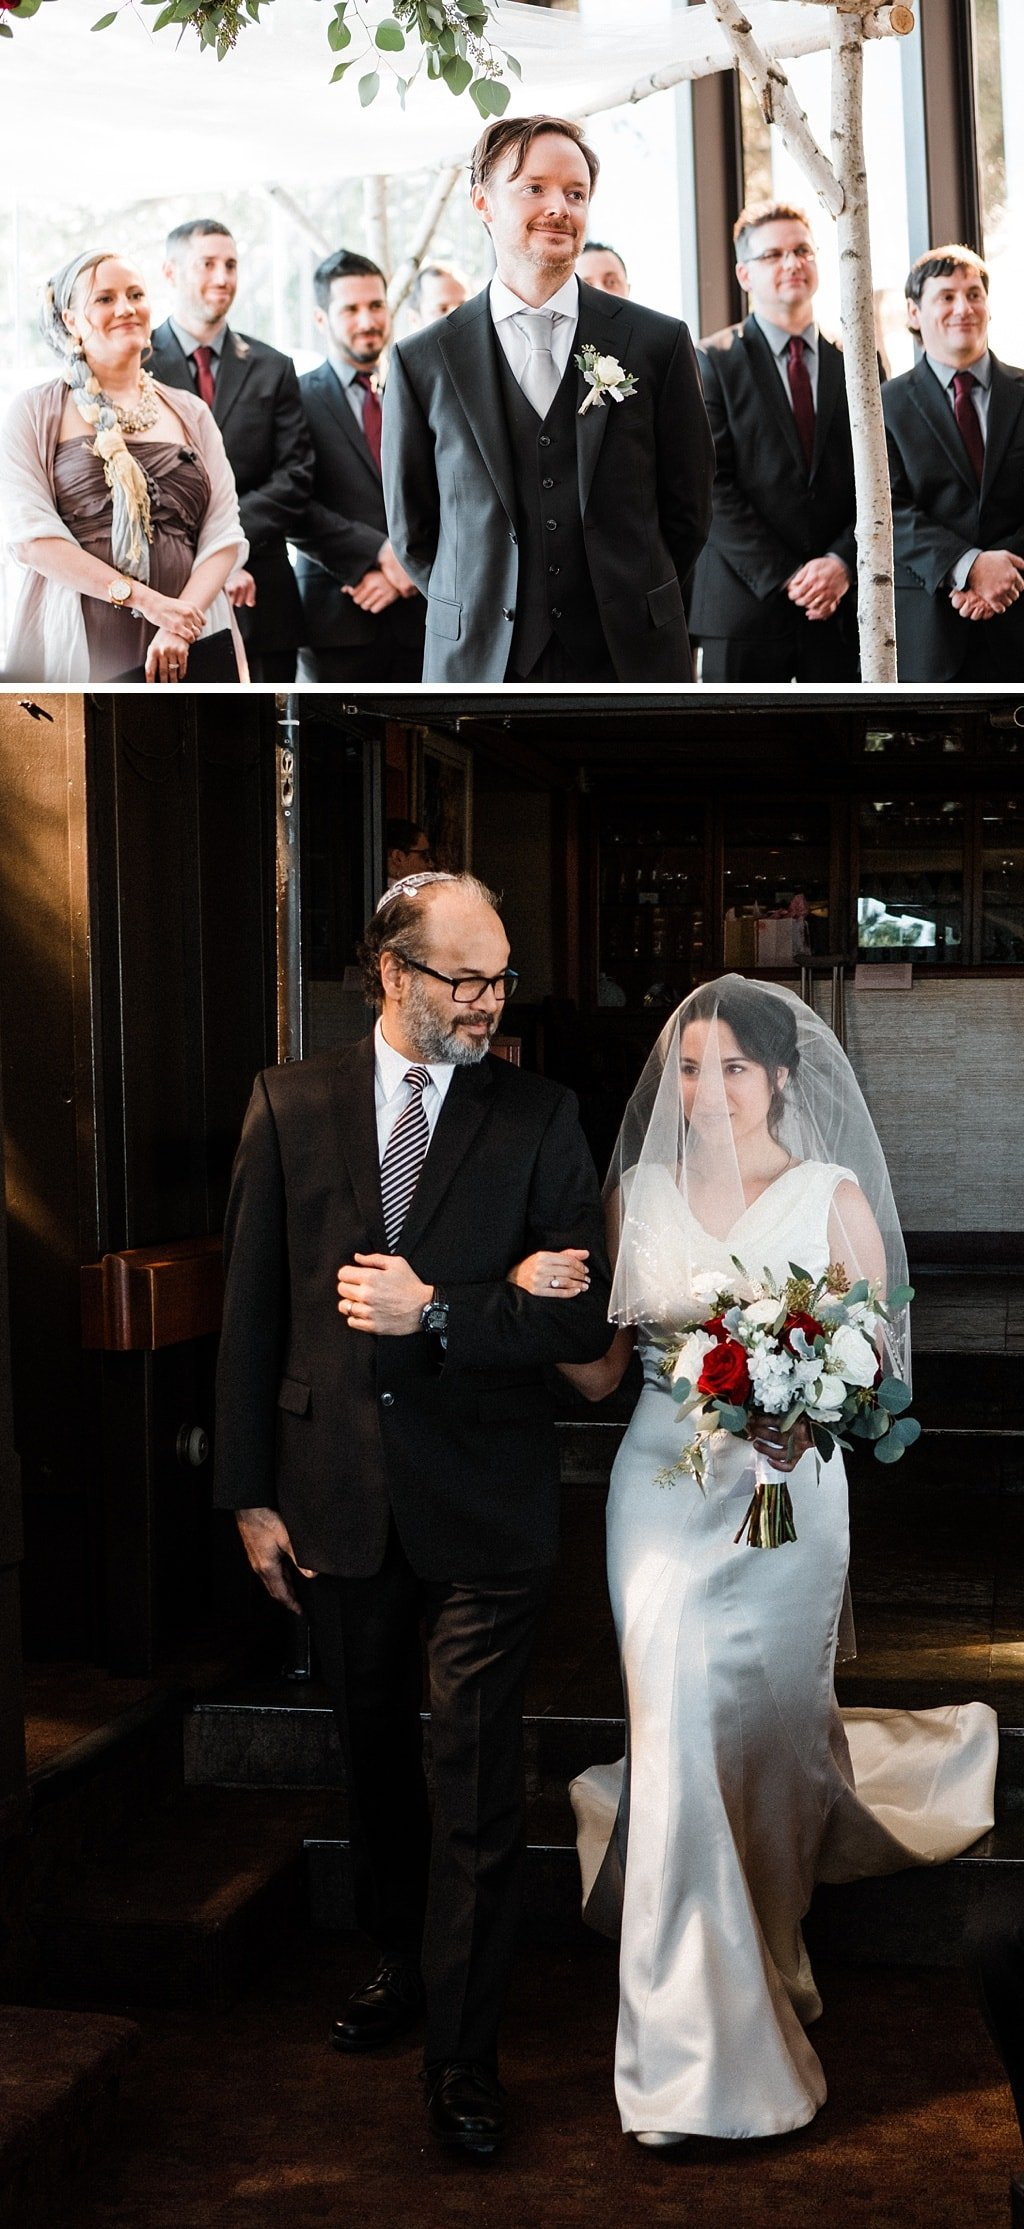 Bride and her father walking into ceremony at Flagstaff House wedding in Boulder Colorado, Jewish wedding ceremony